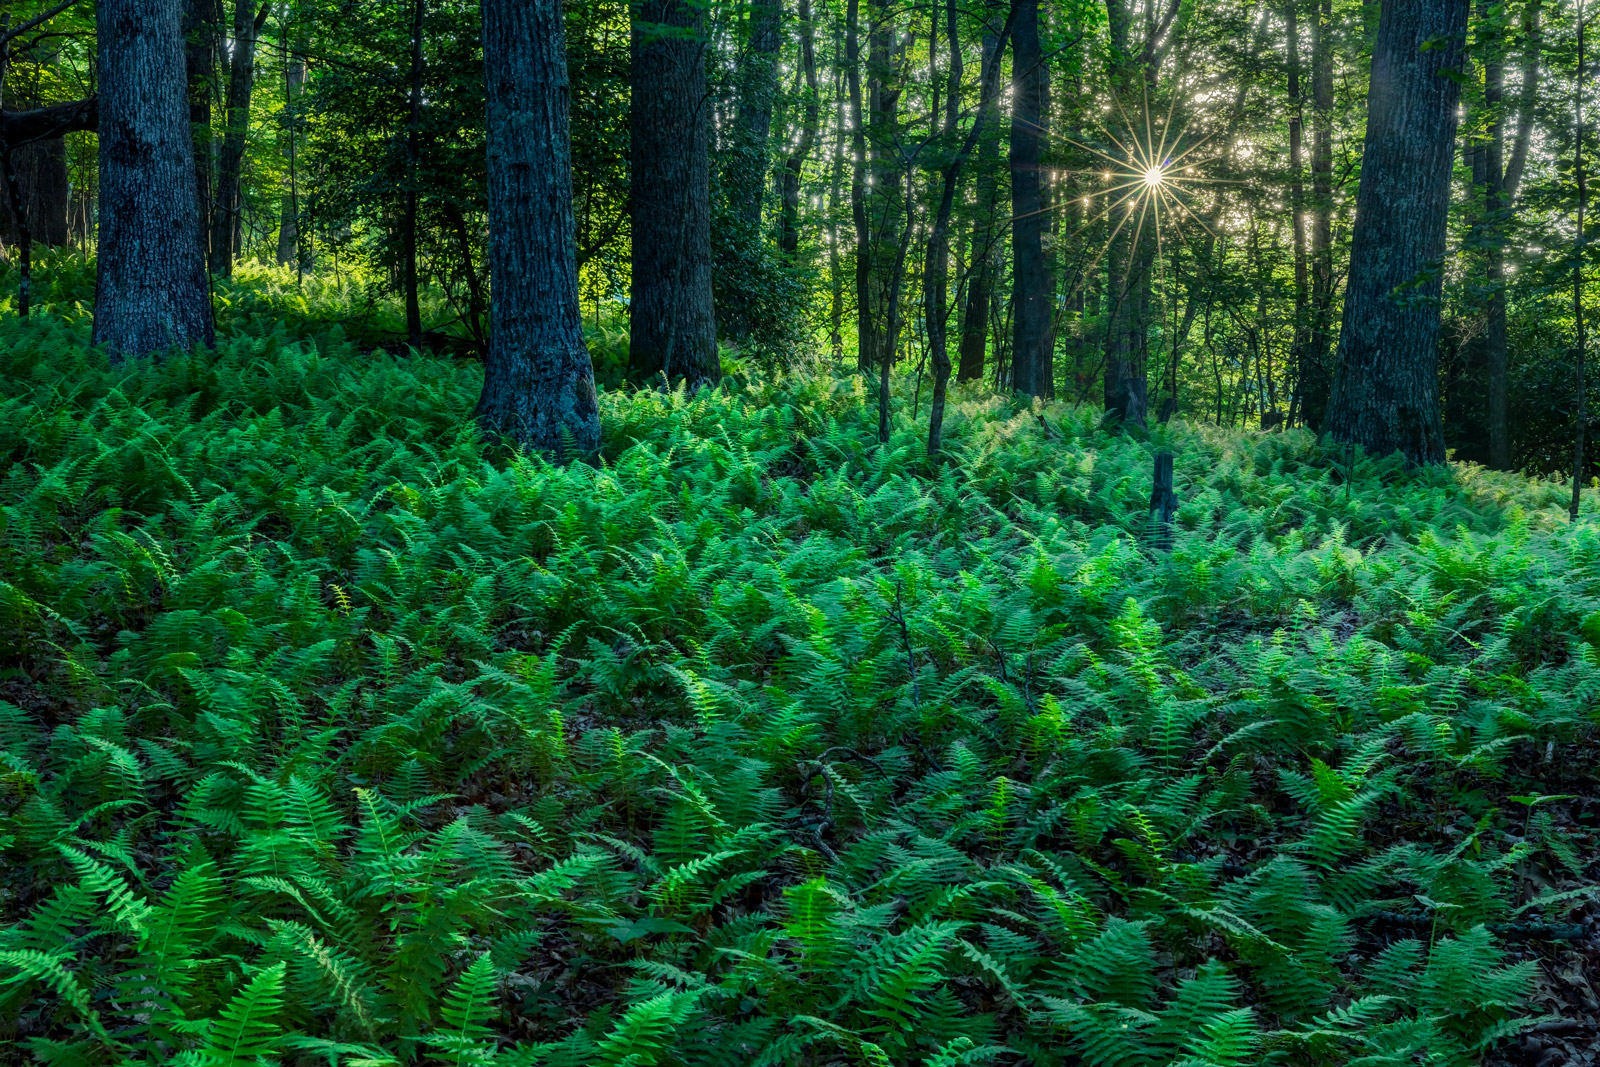 ferns in the forest with sunlight breaking through